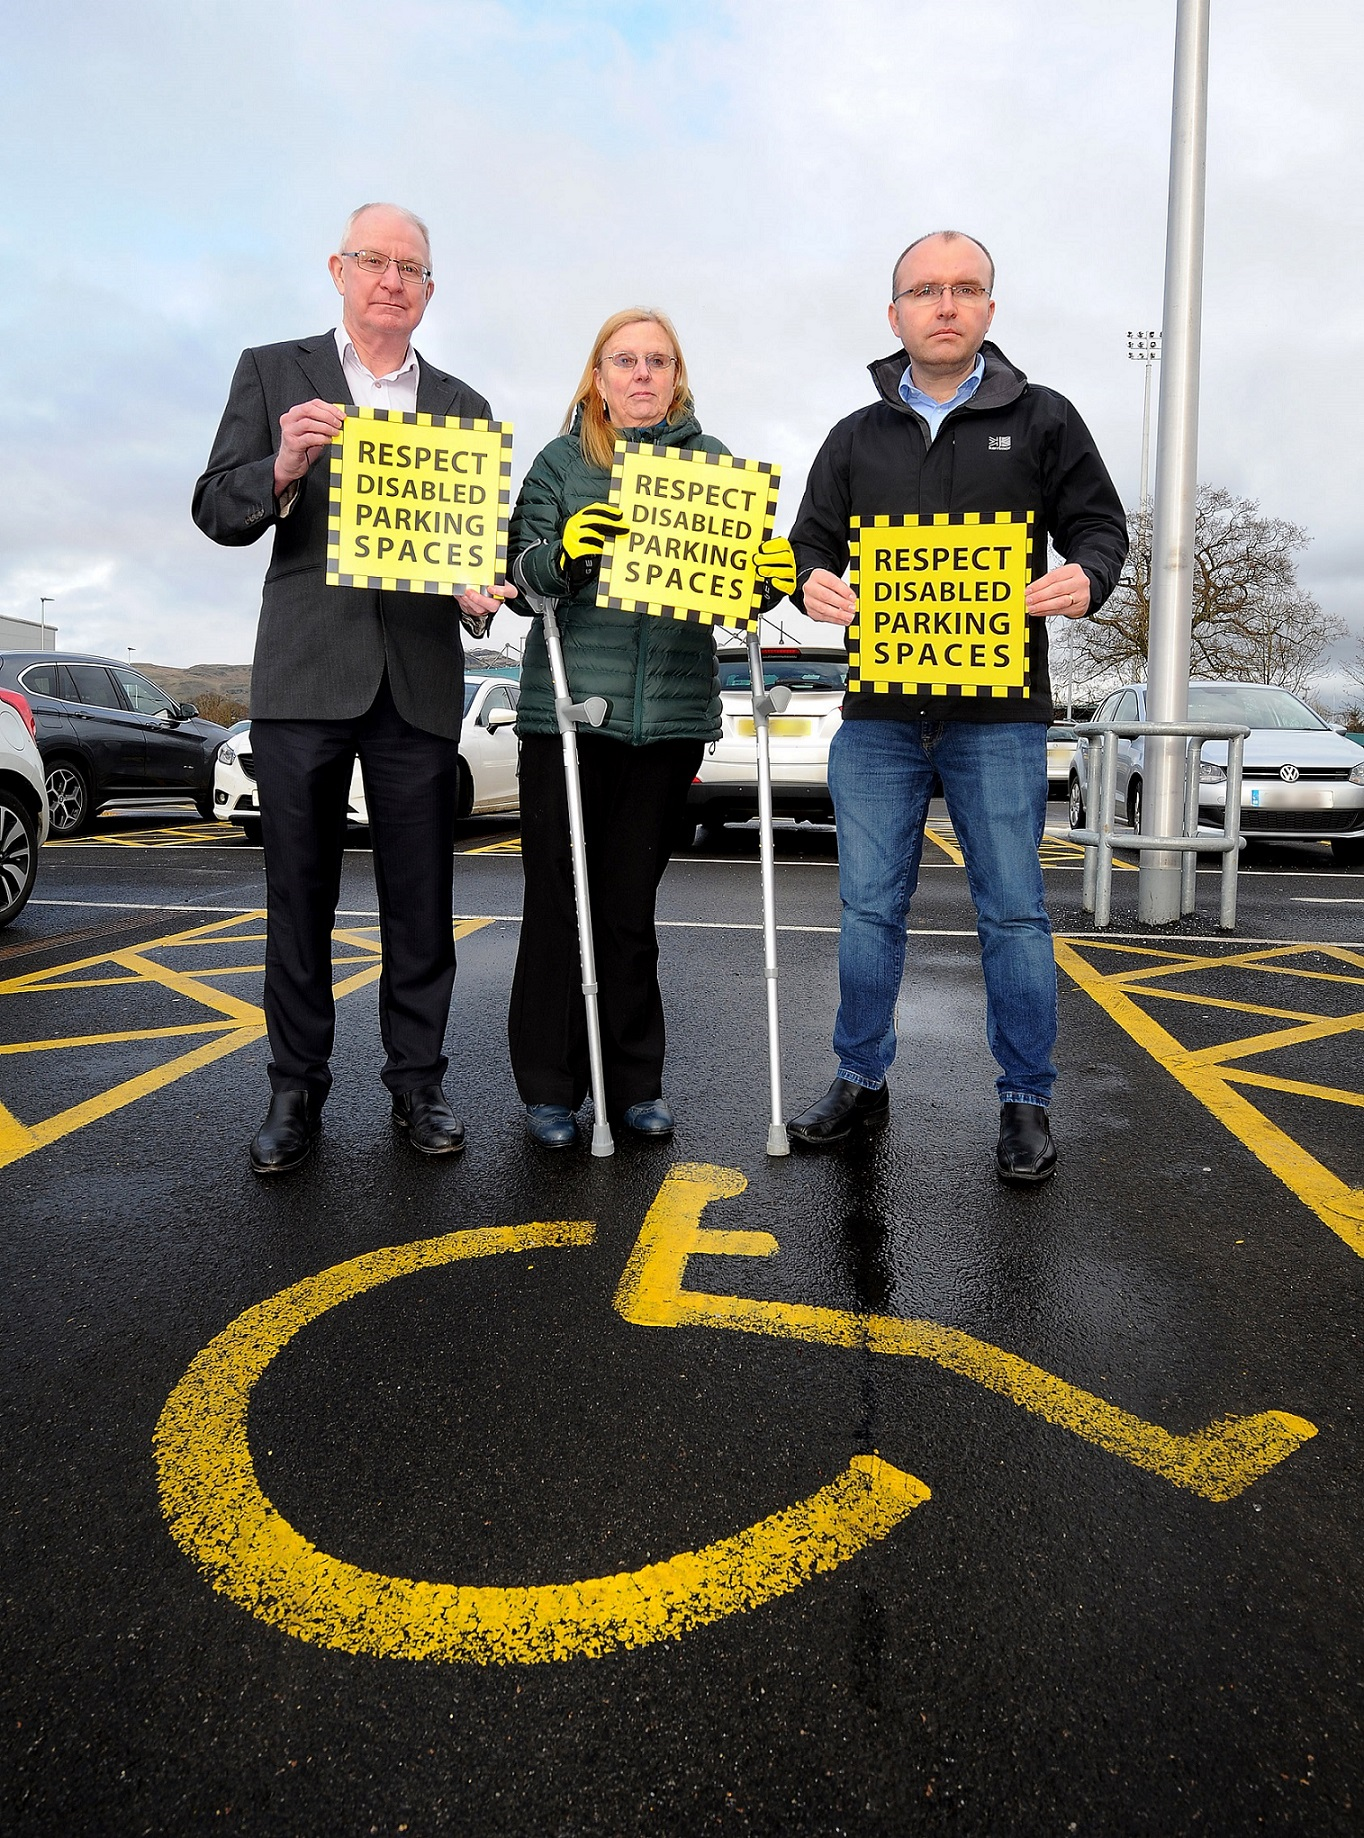 Campaign against disabled parking